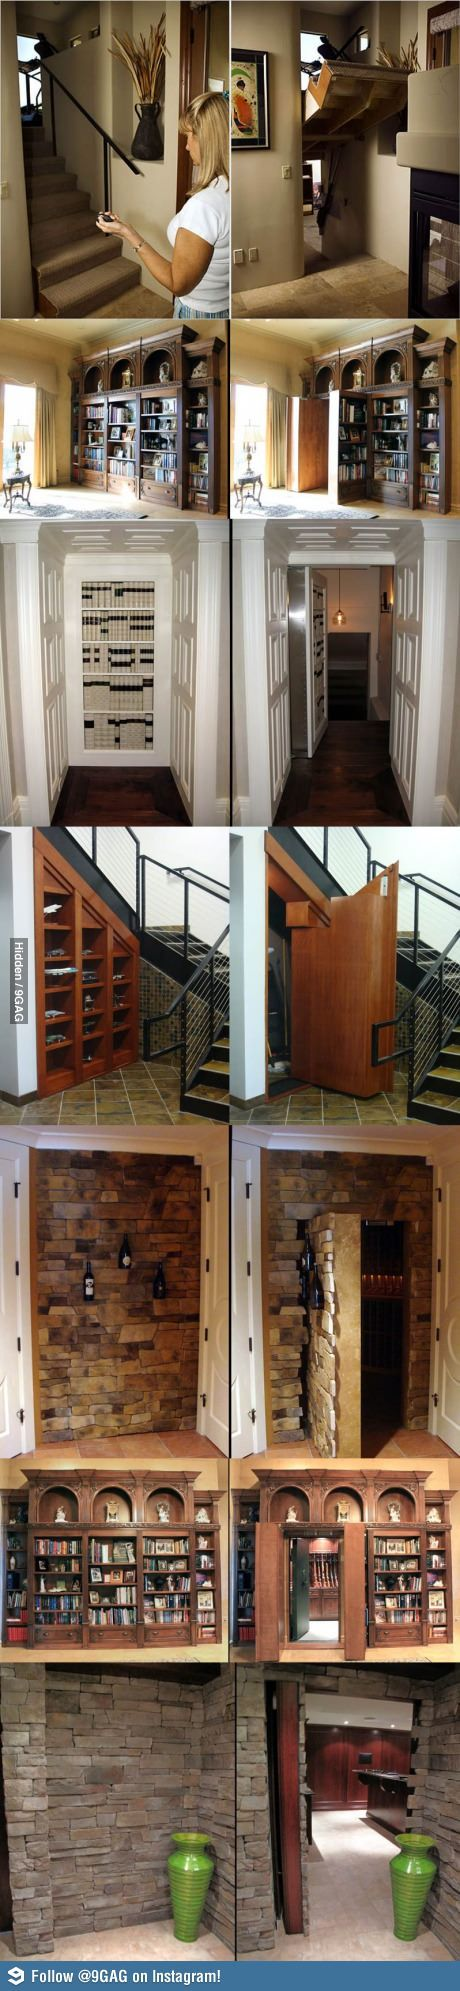 25 best ideas about cool secret rooms on pinterest for Houses with secret rooms and passageways